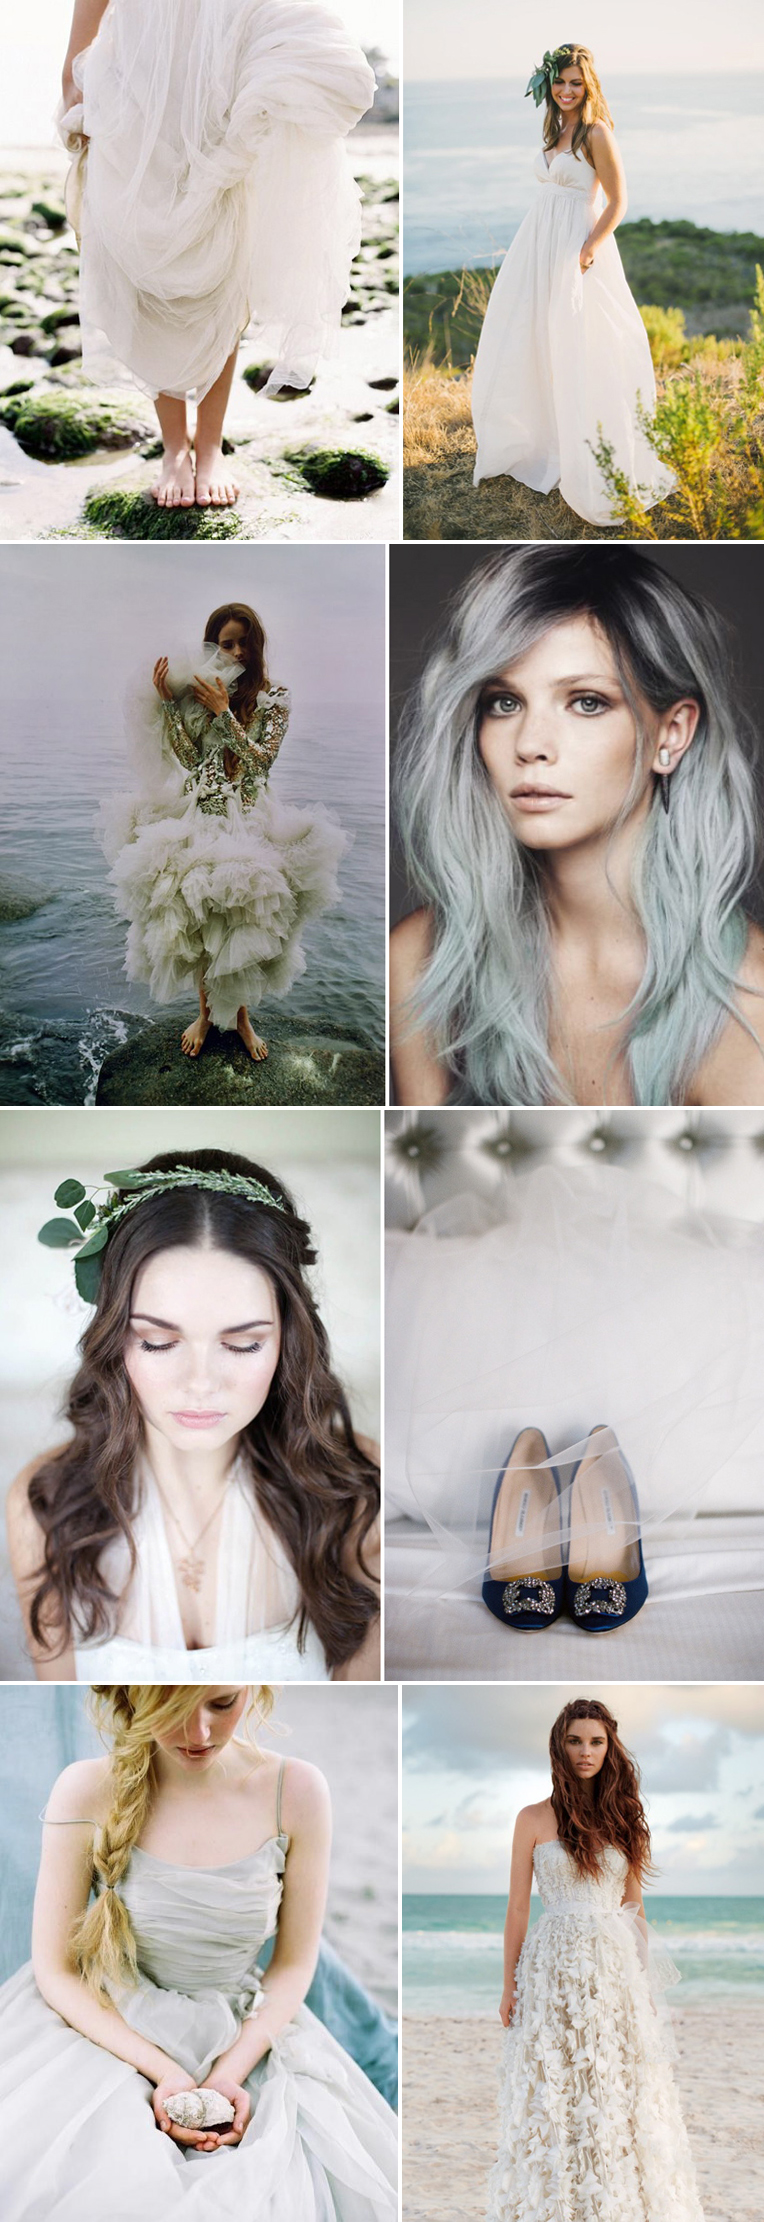 Coco Wedding Venues - Style Categories - Coastal Cool - Siren.